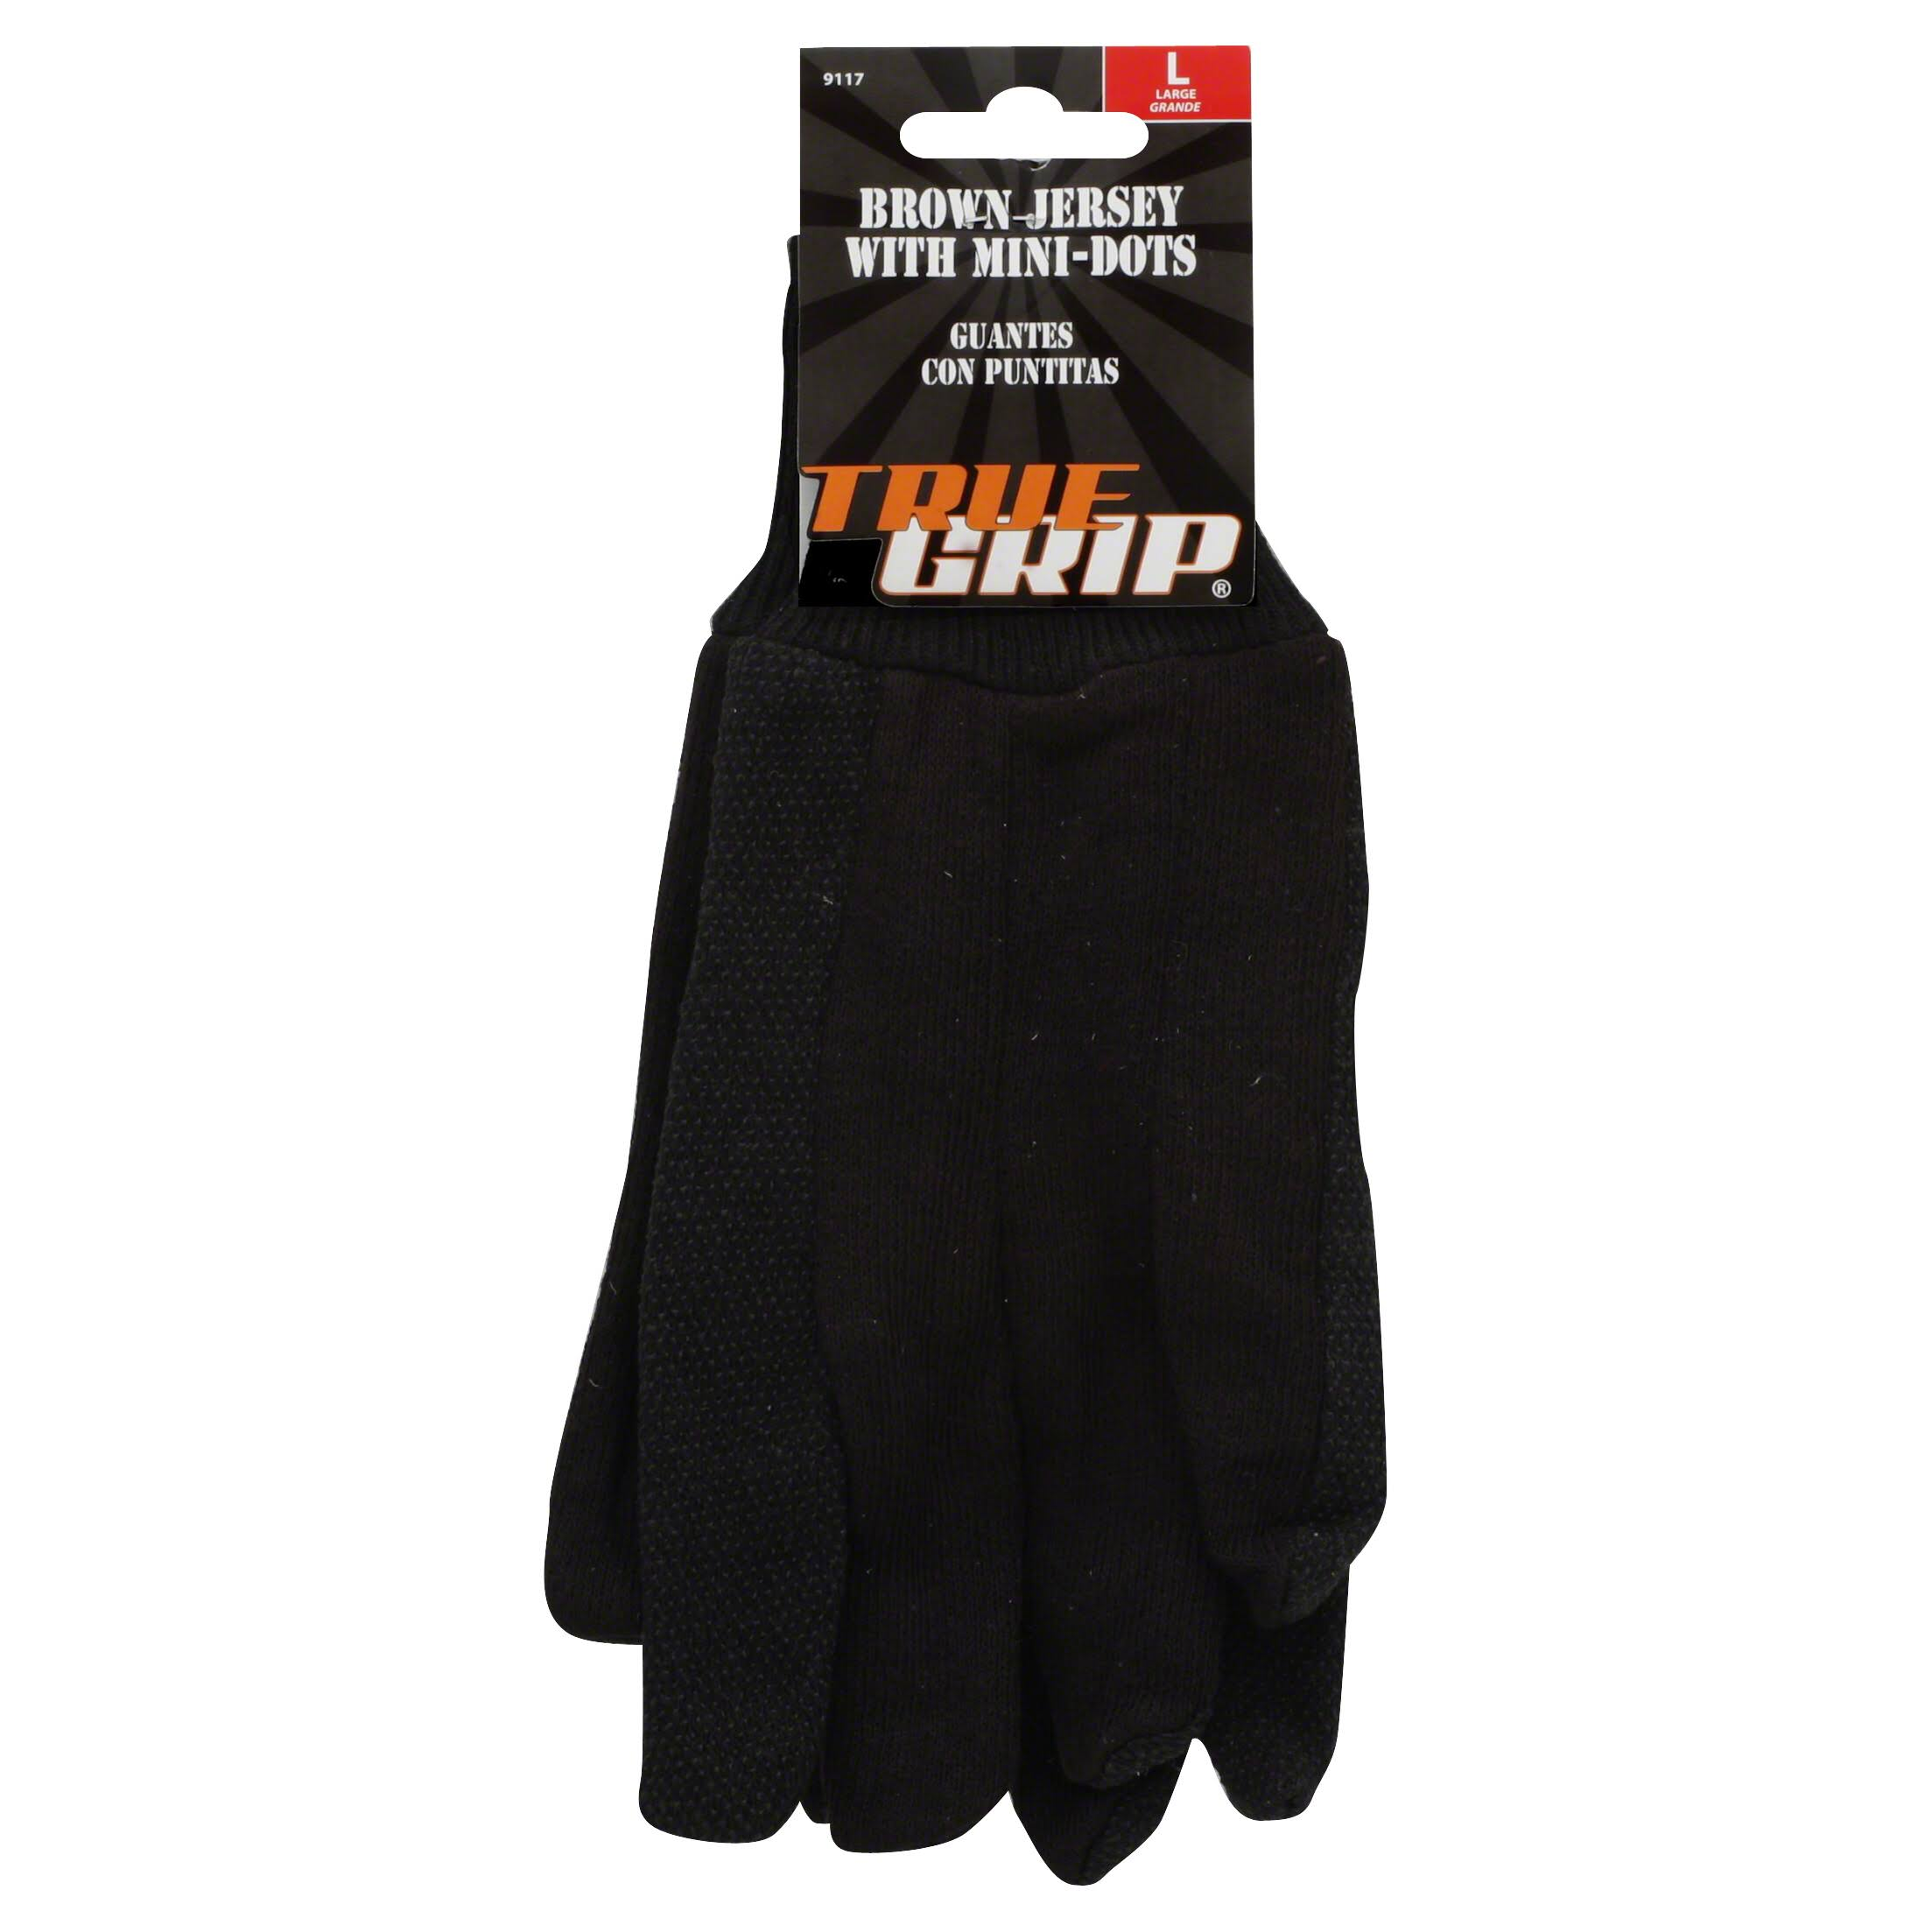 Big Time Products True Grip Jersey Glove - Brown, Large